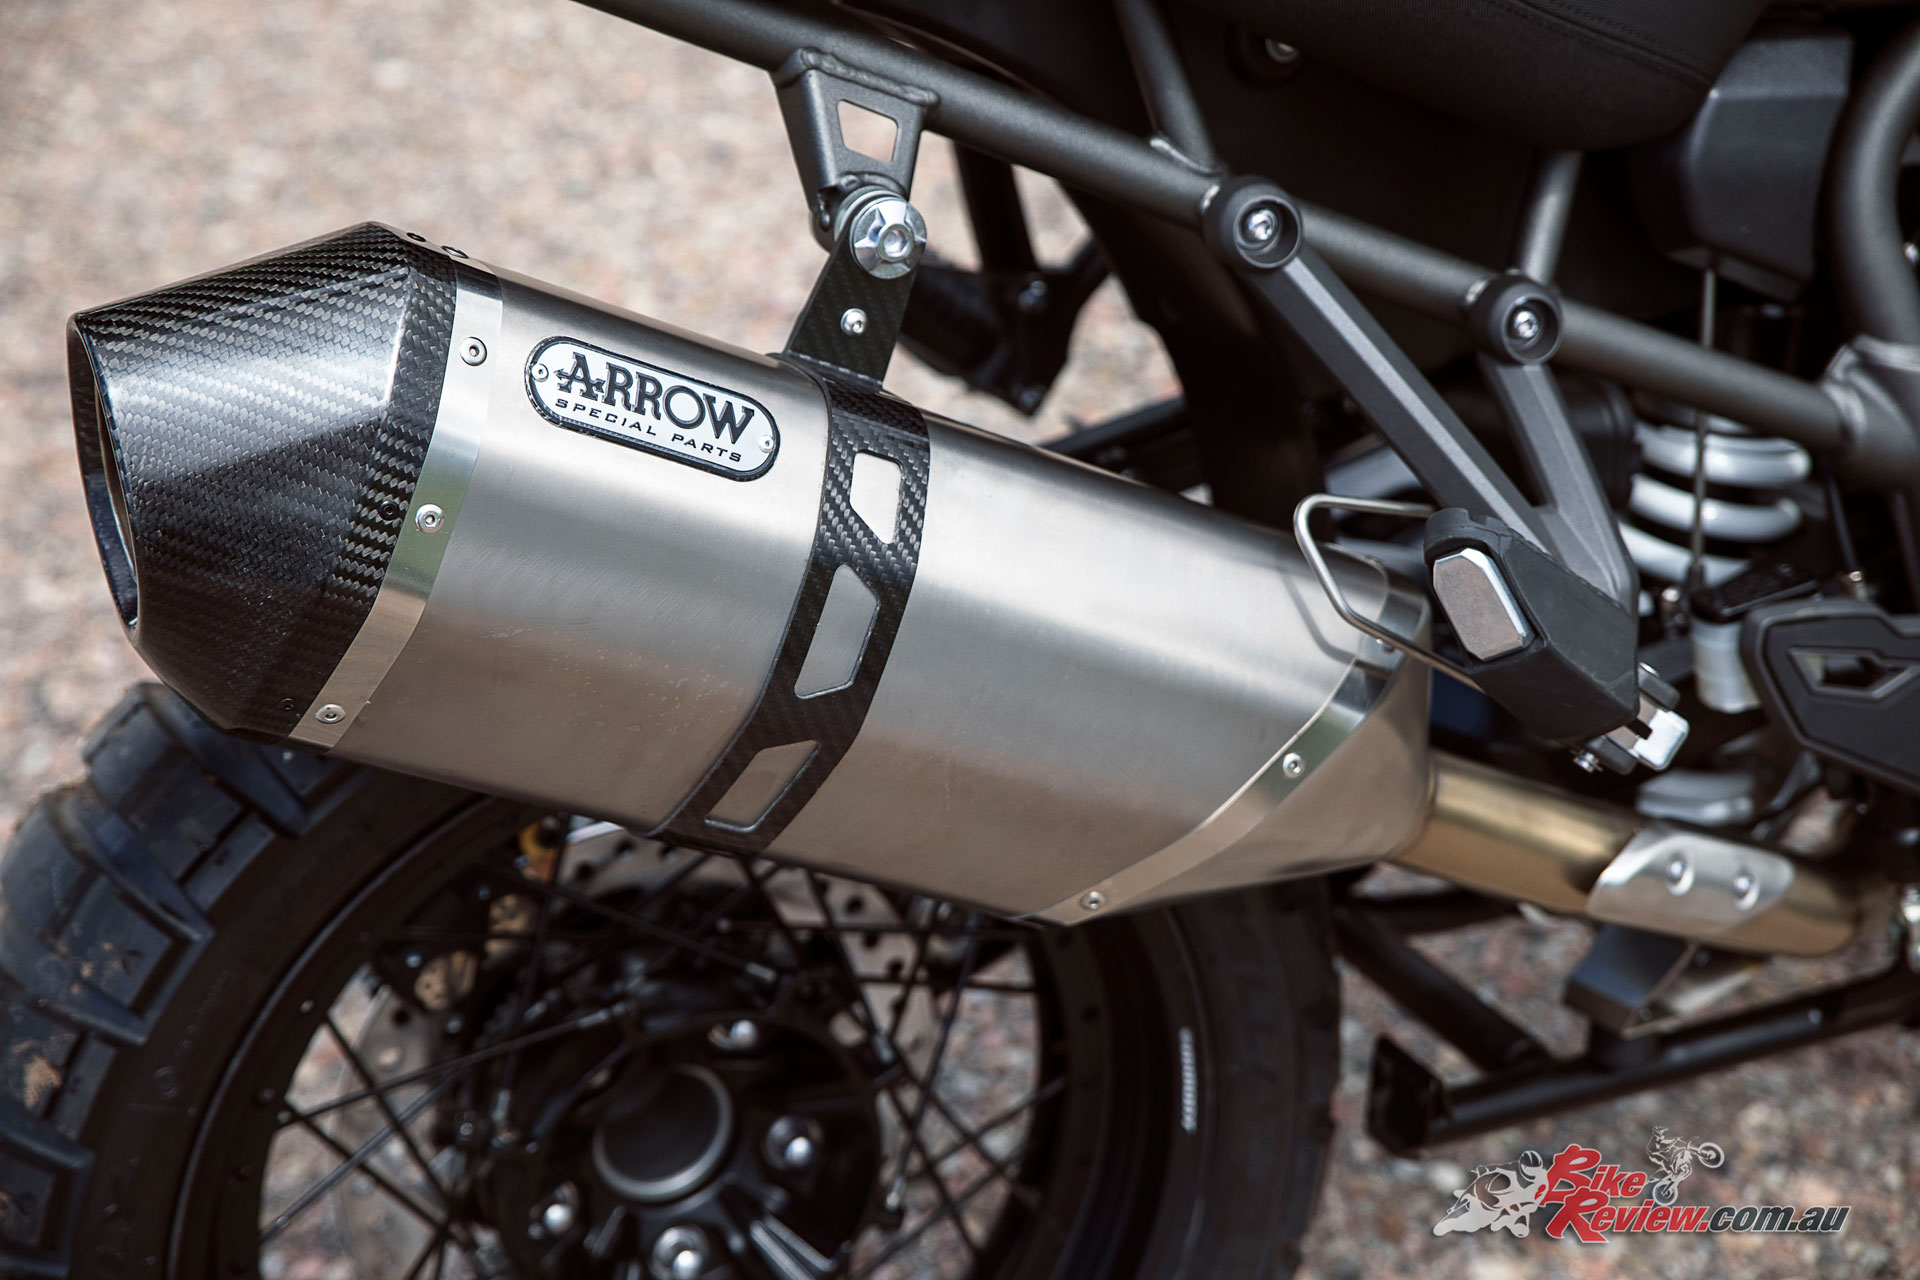 A new lighter standard can is now used, with Arrow accessory exhausts available as pictured